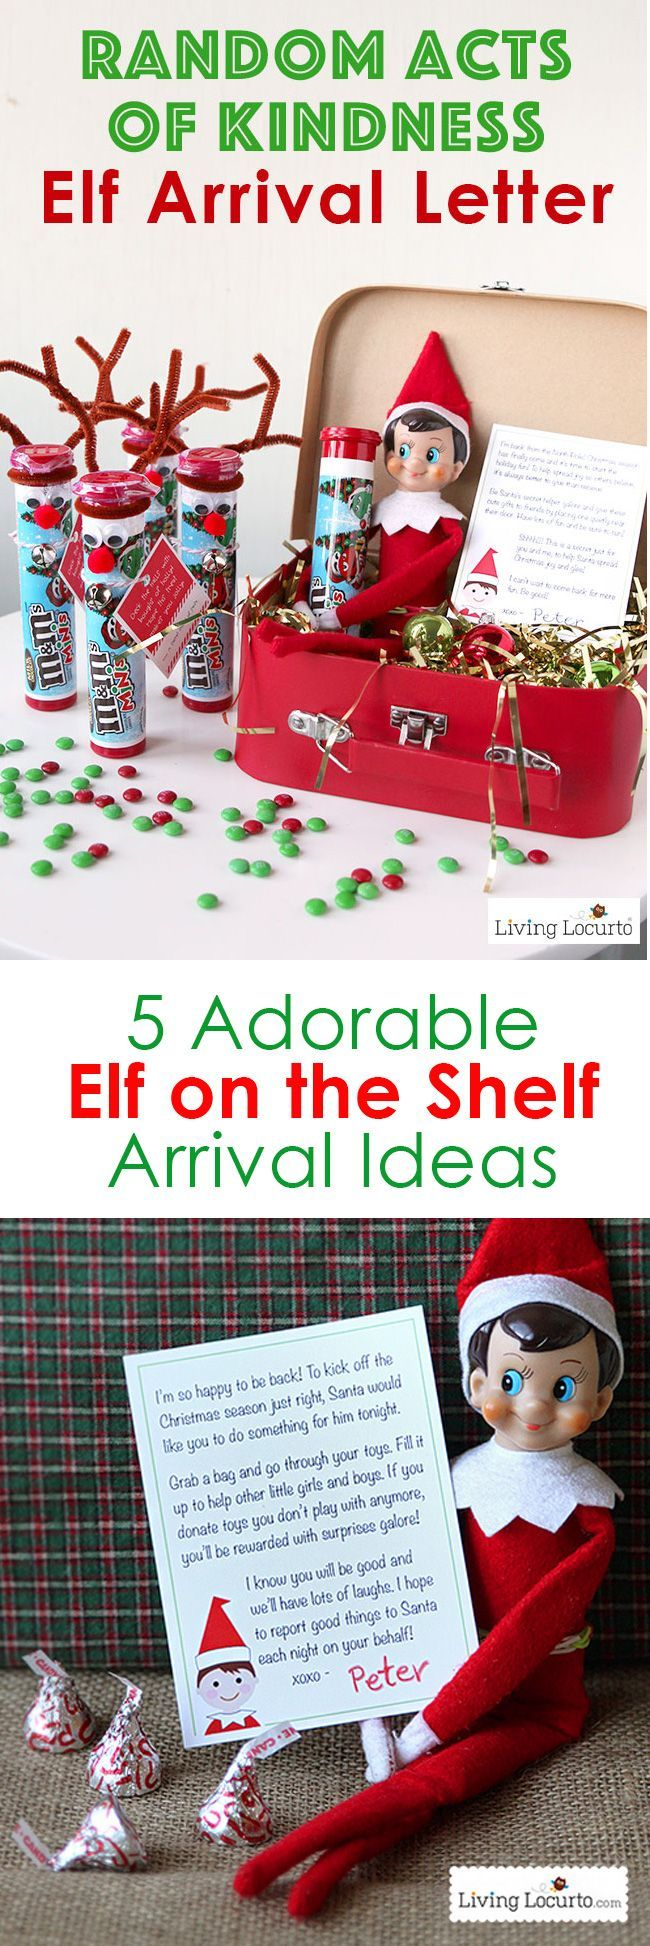 Creative Elf on the Shelf Arrival Ideas